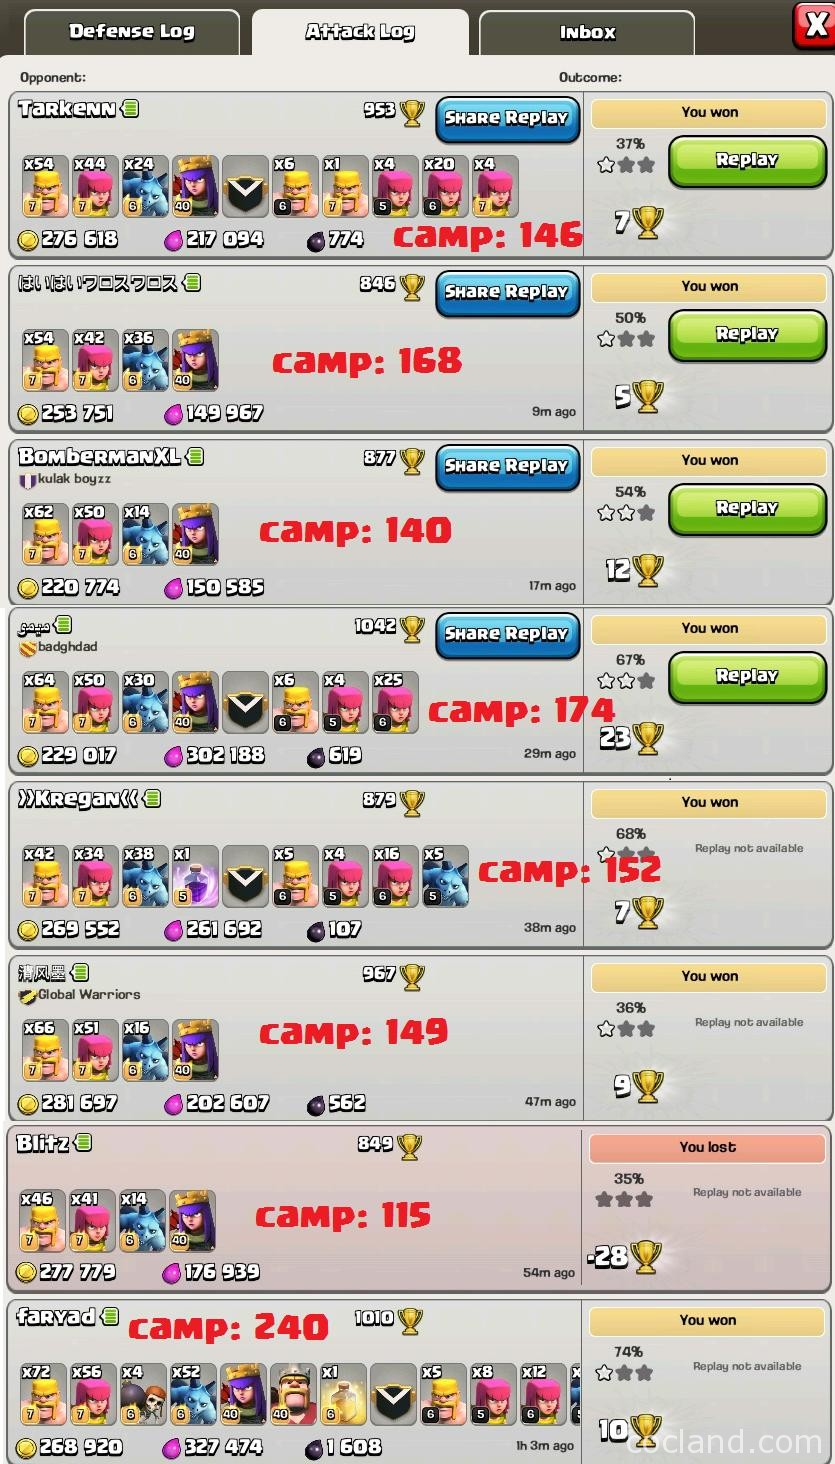 Stunning attack logs with BAM